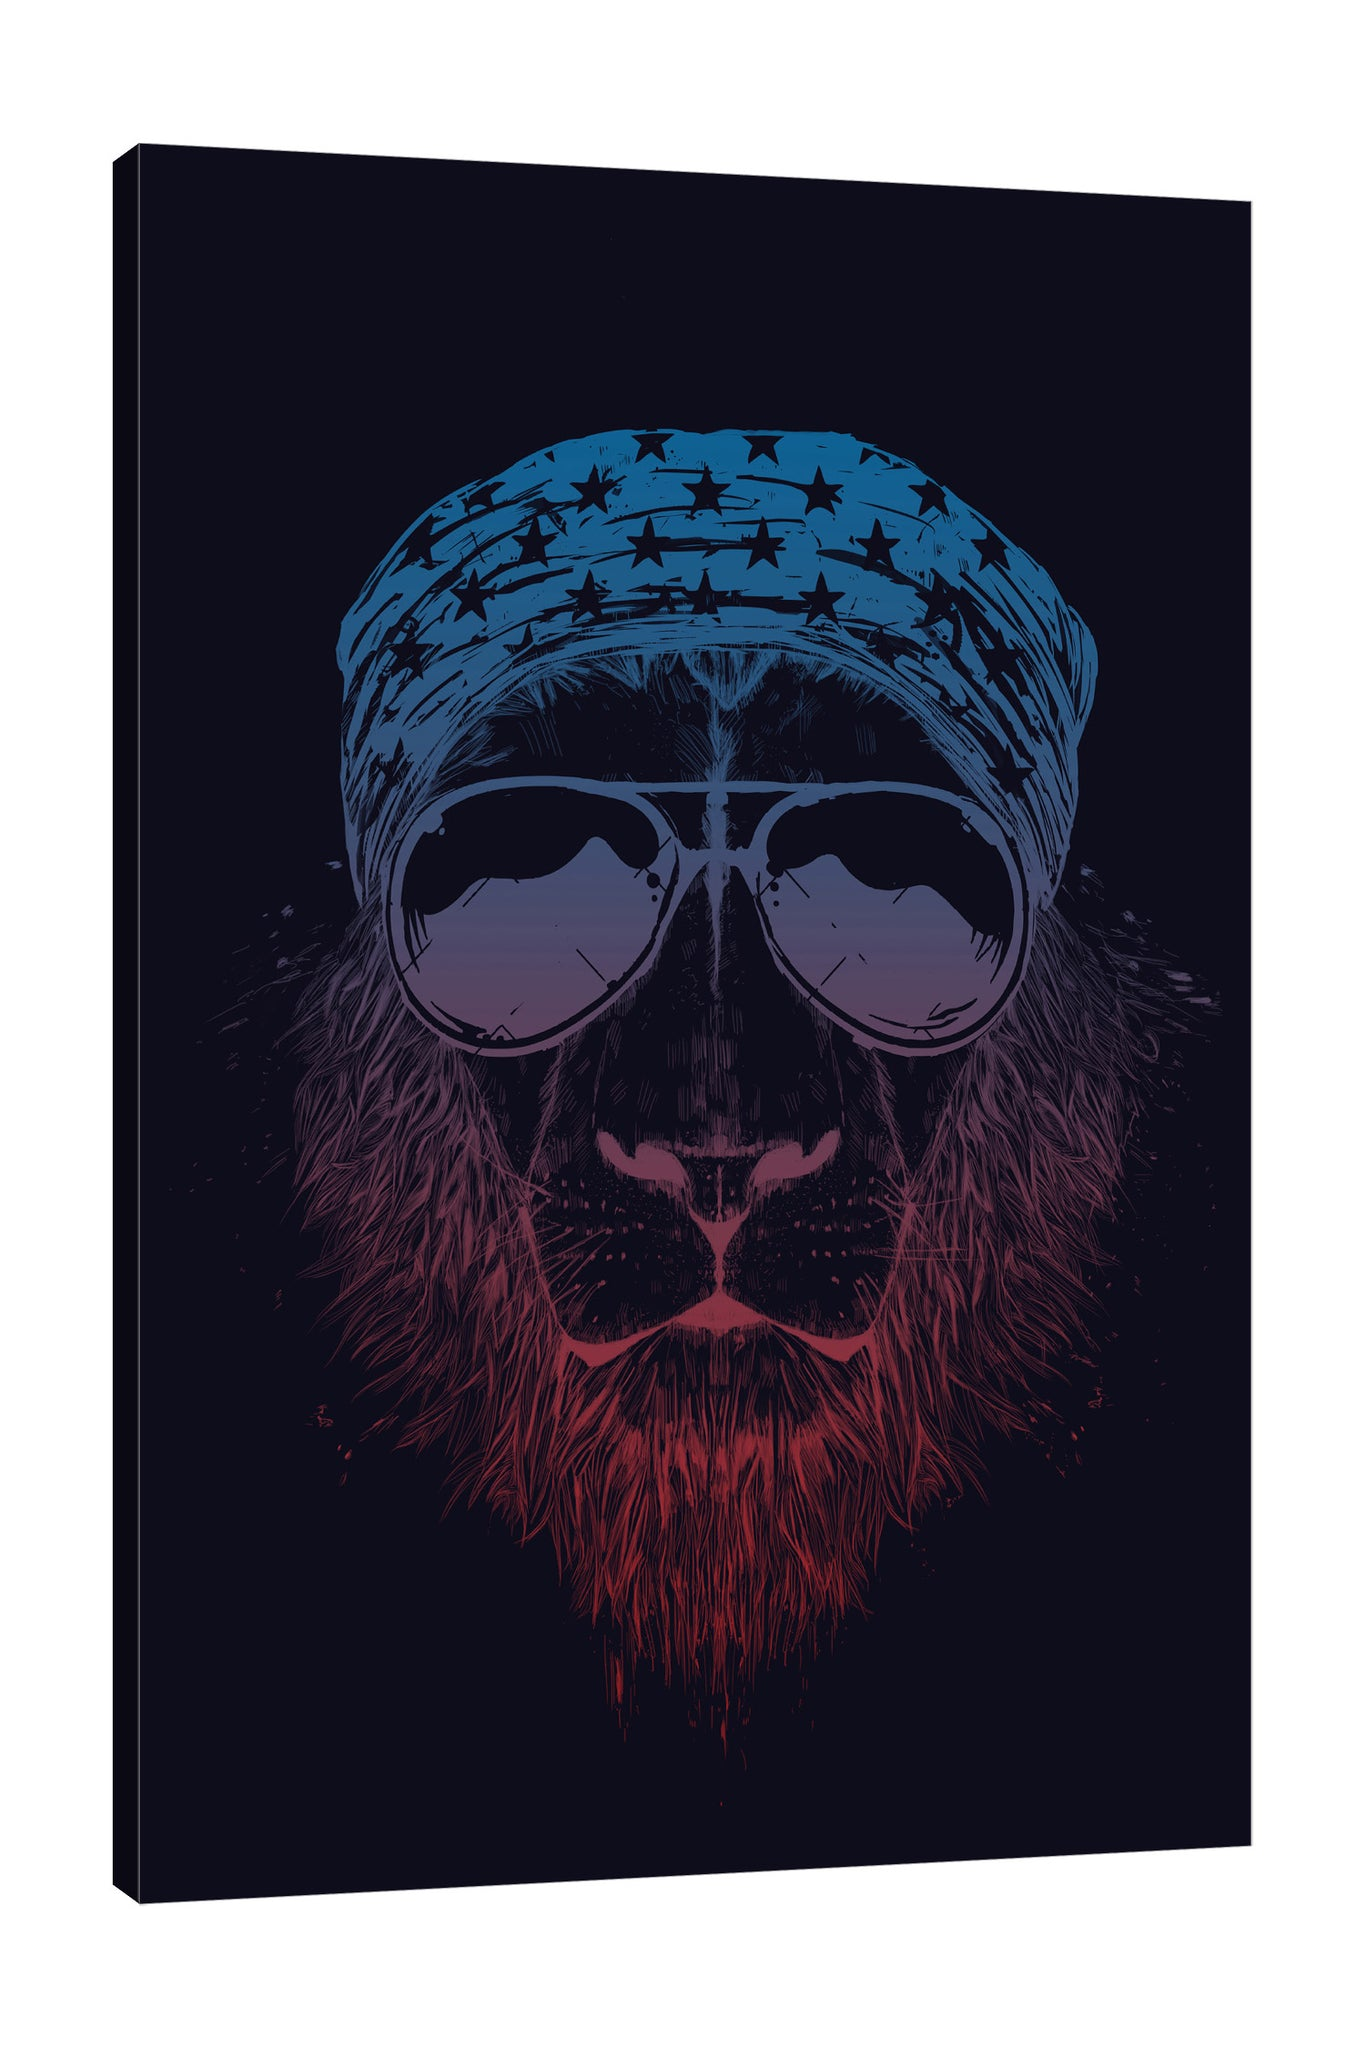 Balazs-Solti,Modern & Contemporary,Animals,Fashion,animals,animal,sunglasses,sunglass,shades,shade,star,stars,bandana,bandanas,lion,lions,black,Red,Sea Green,Charcoal Gray,Turquoise Blue,Black